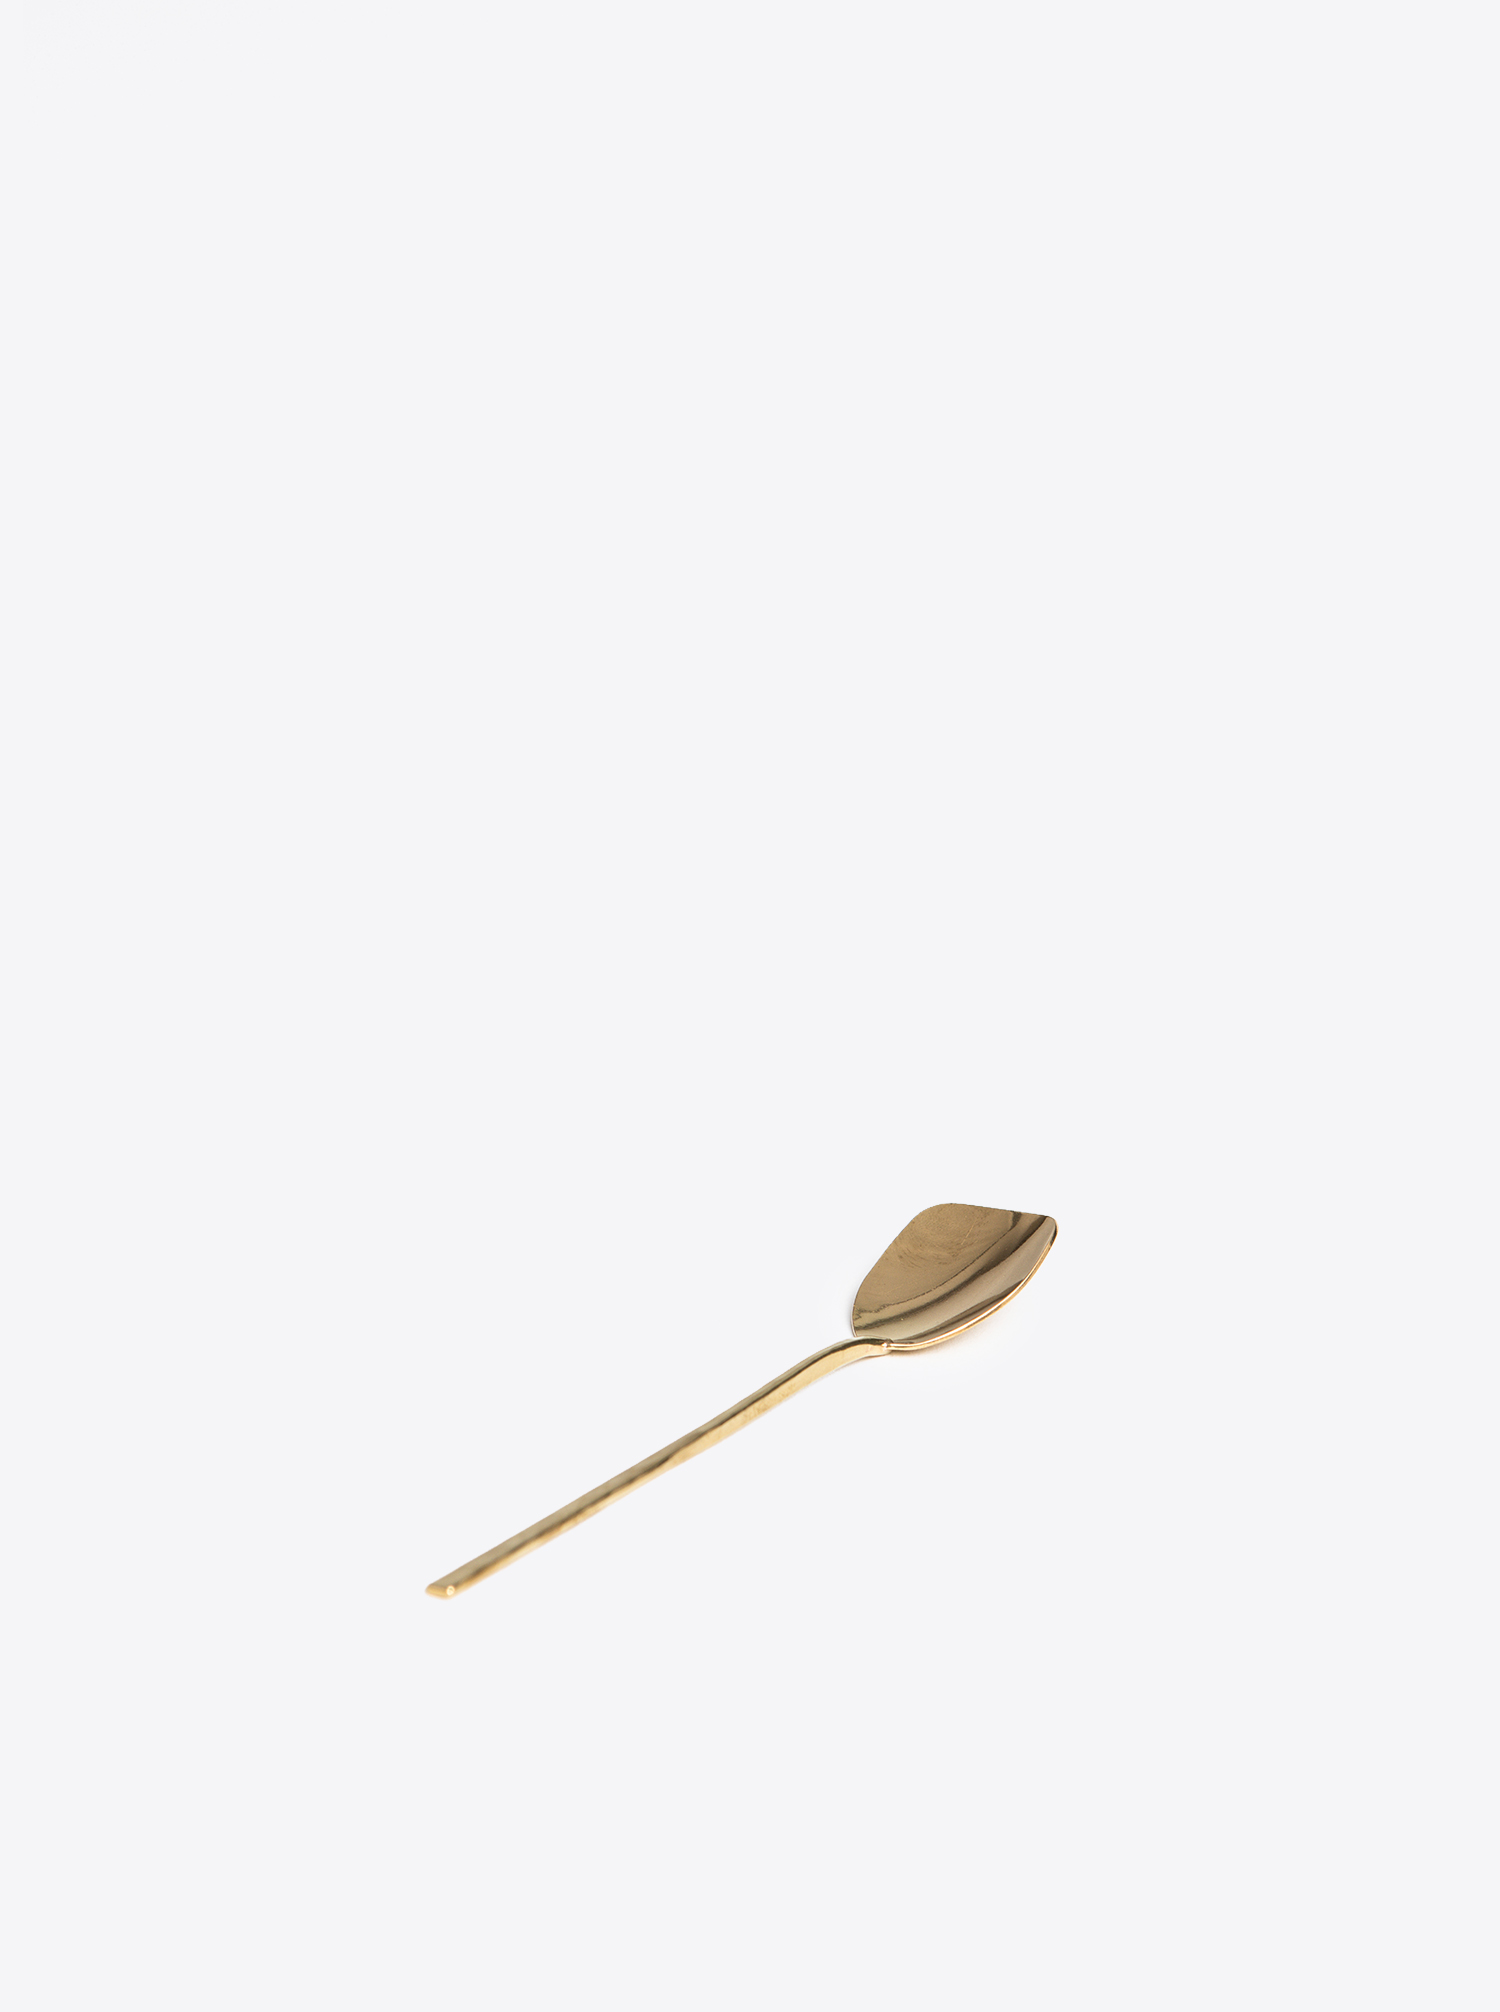 Soft Ice Spoon in Brass